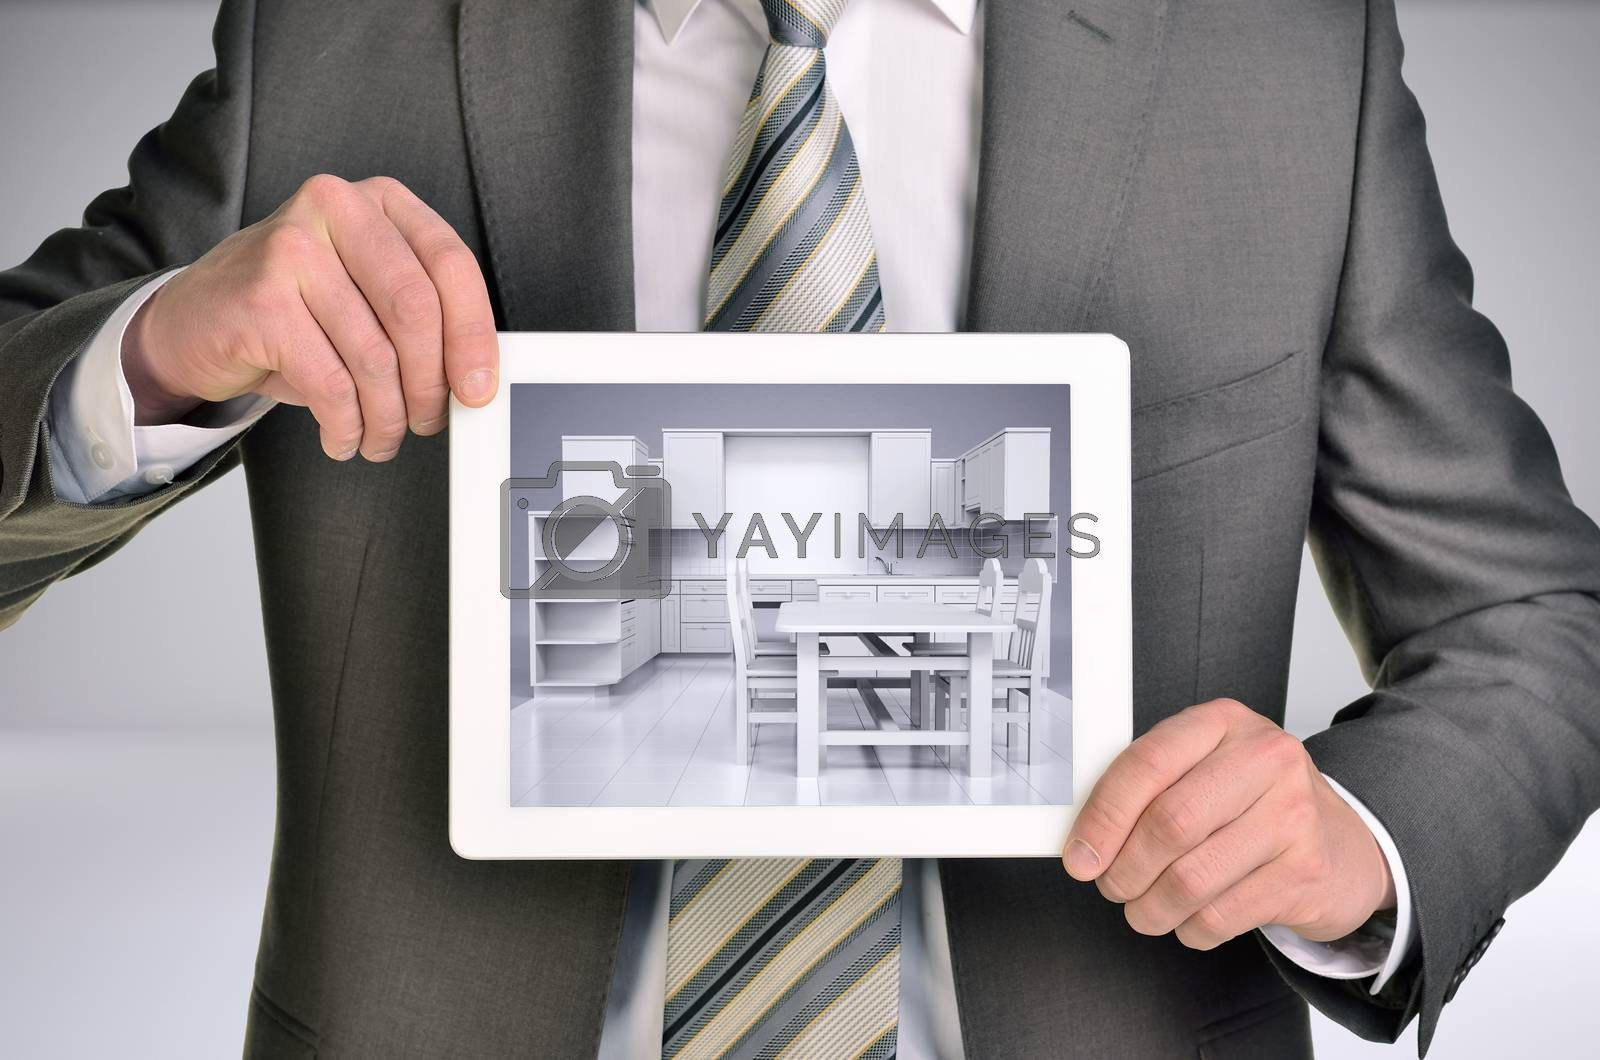 Three-dimensional model of kitchen in tablet screen. Man holding tablet in hand. Gray background